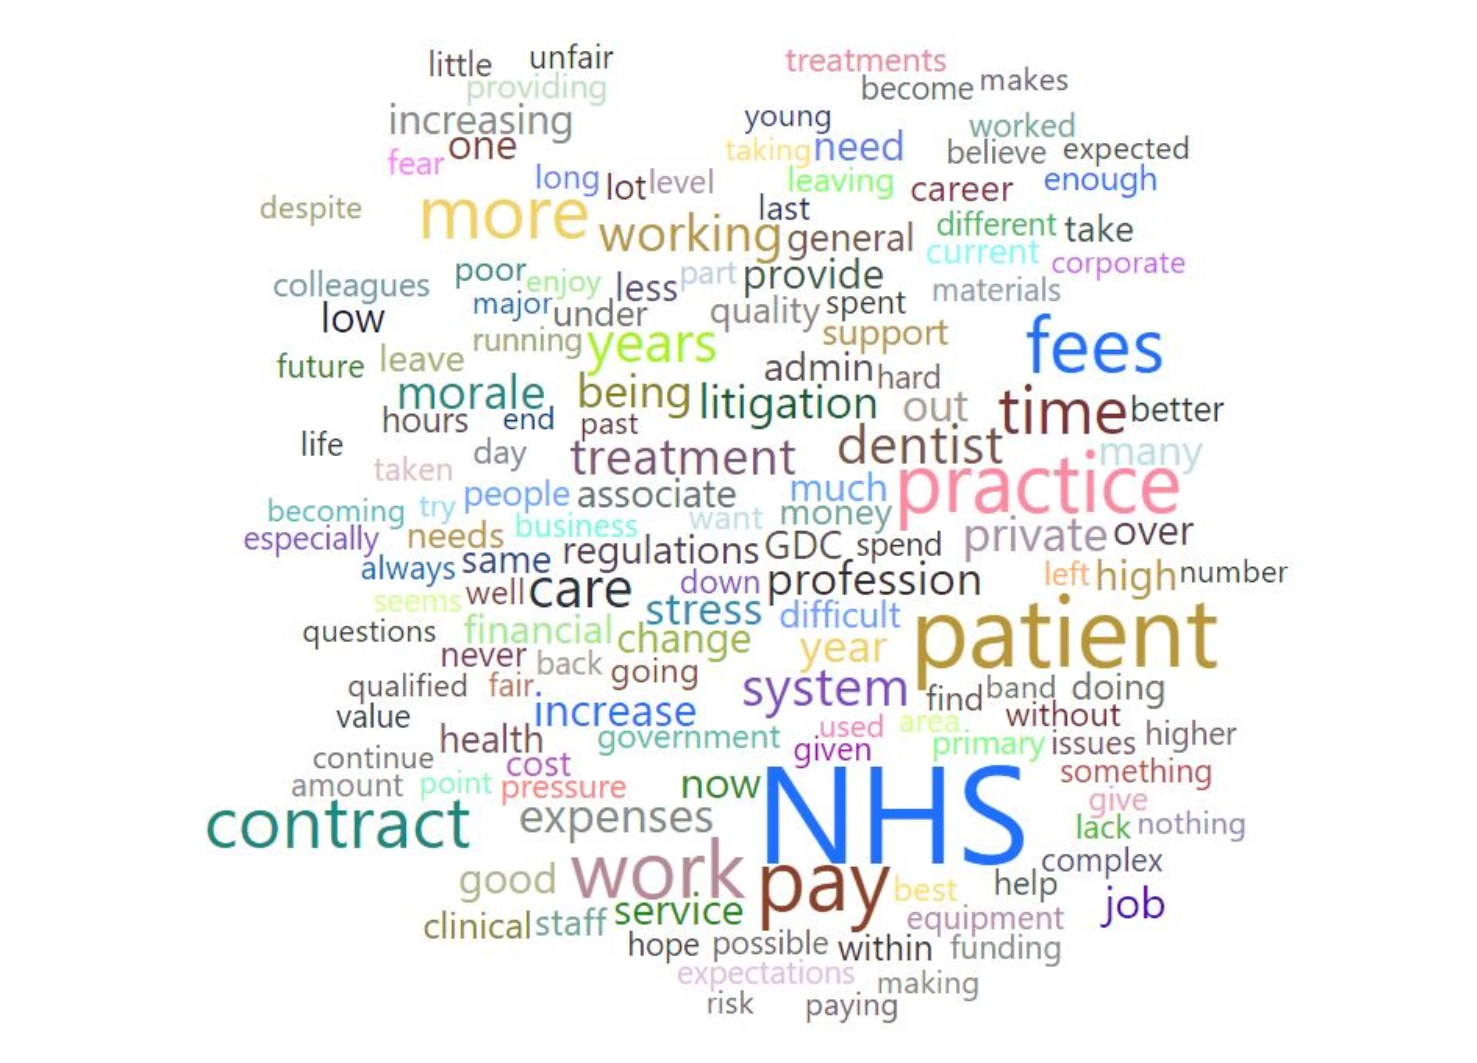 A word cloud is a graphical depiction of text where the size of each word is indicative of the frequency of its use within the text. This word cloud is based upon the free-text comments submitted by dentists at the end of the 2016/17 and 2017/18 Dental Working Patterns Survey.